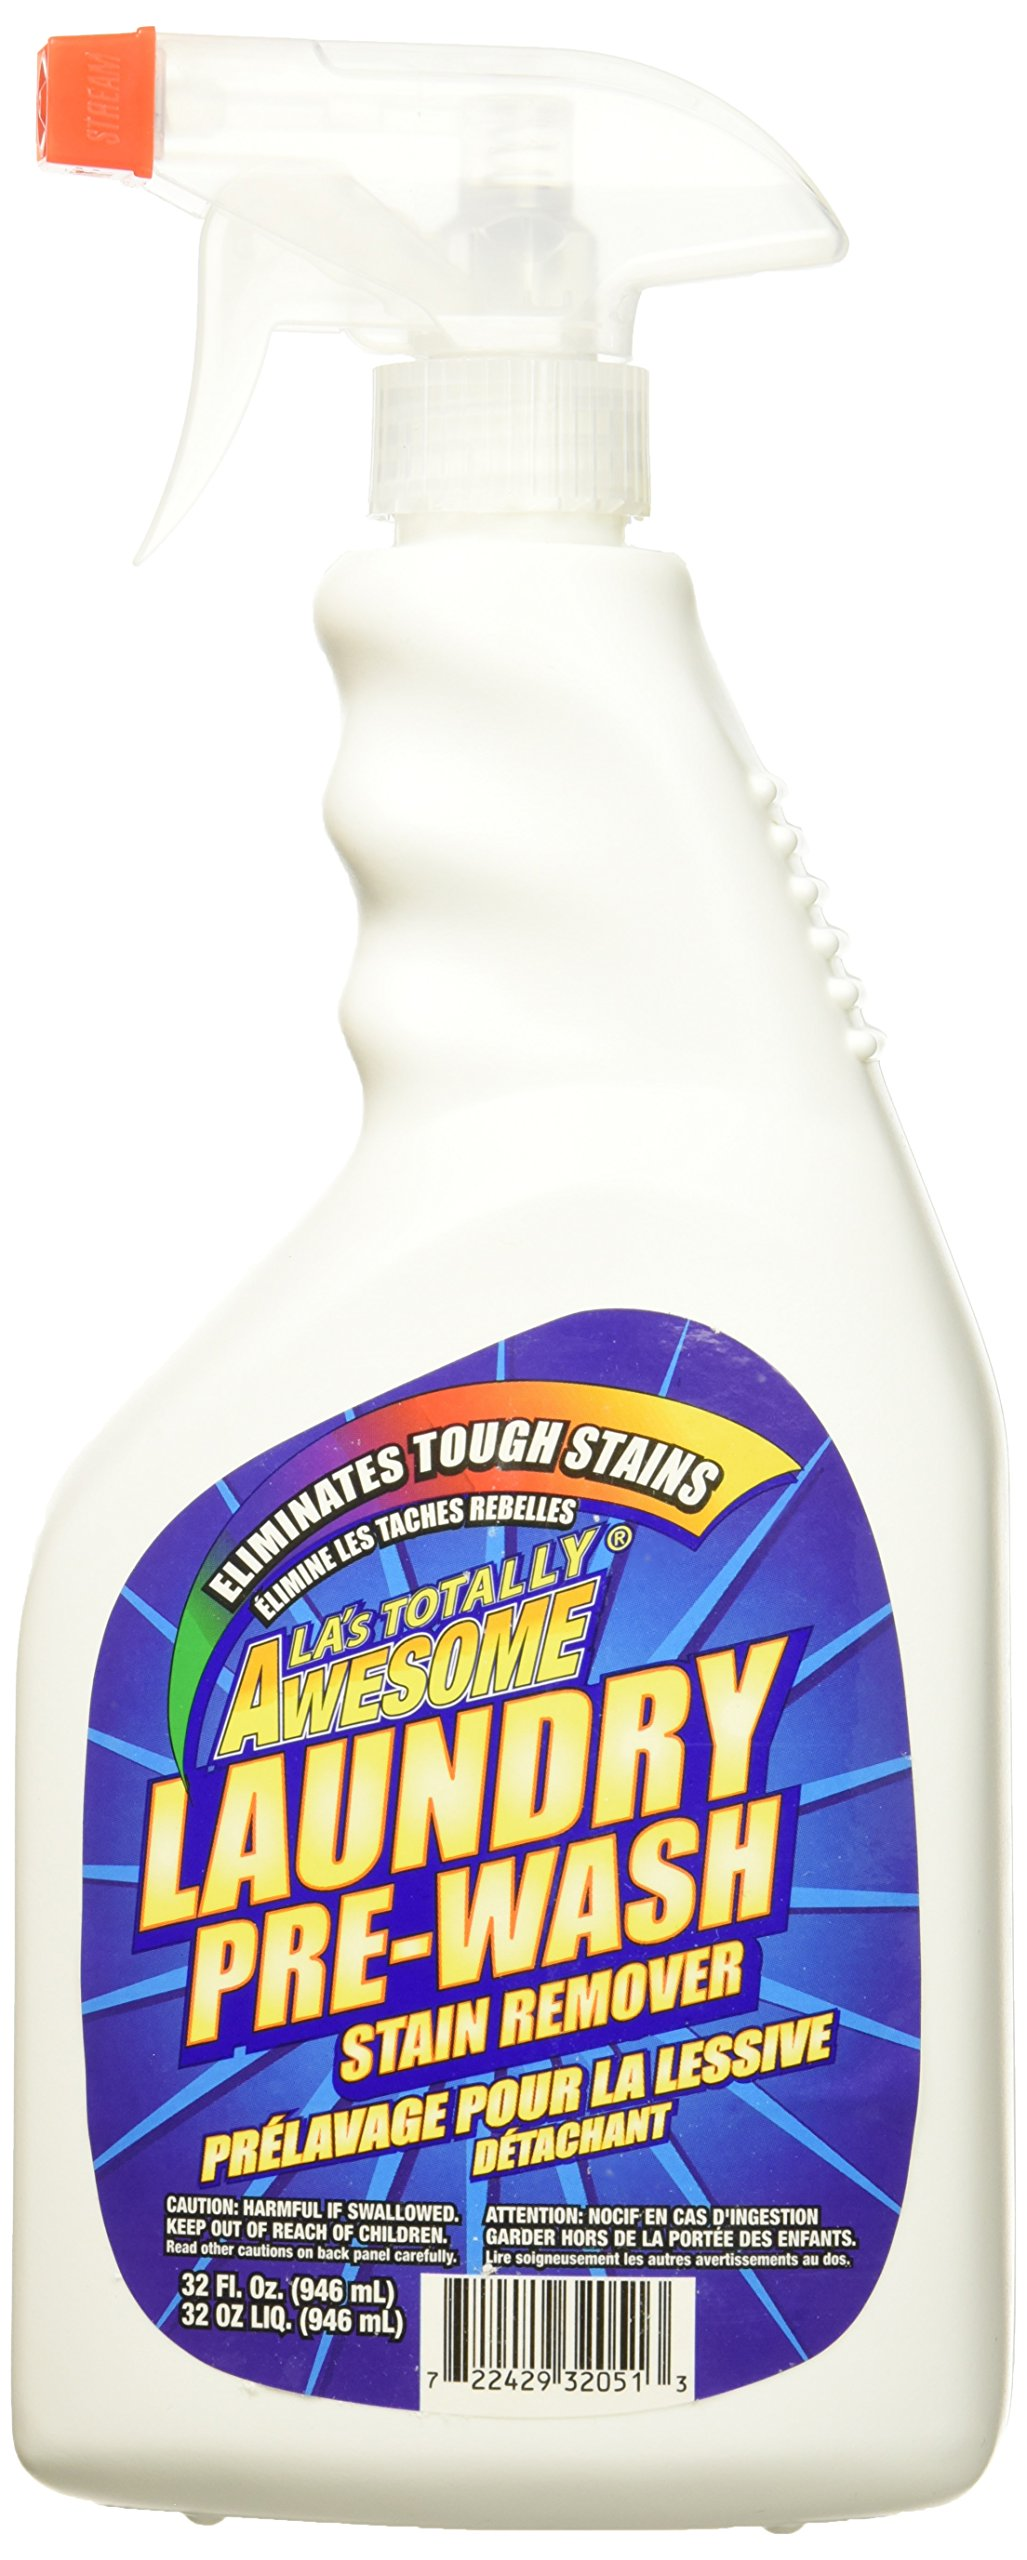 LA's Totally Awesome Laundry Pre-Wash Stain Remover, 32 Ounce